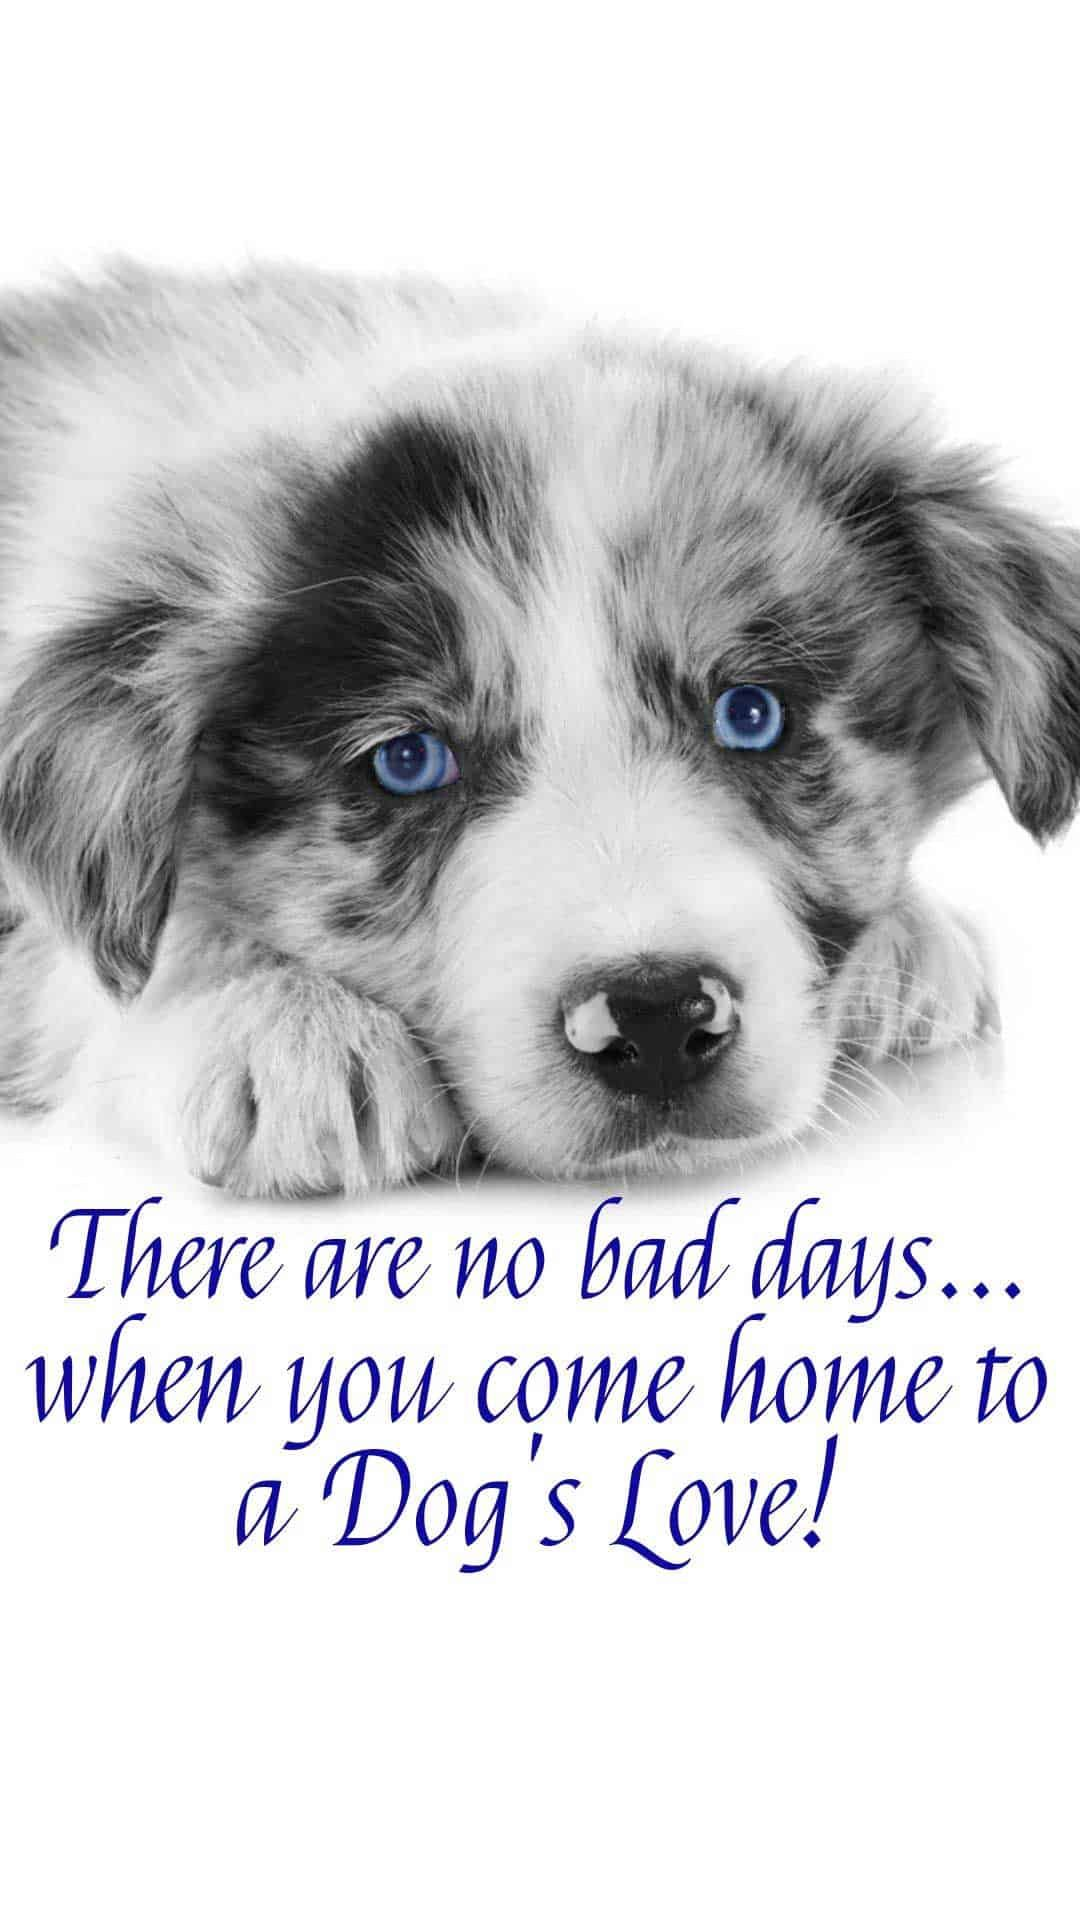 20 Free Dog Wallpapers I Phone And Android 20 Hd Sized Homescreen Wallpaper Dog Pictures Best Dog Quotes Dogs Dog Pictures